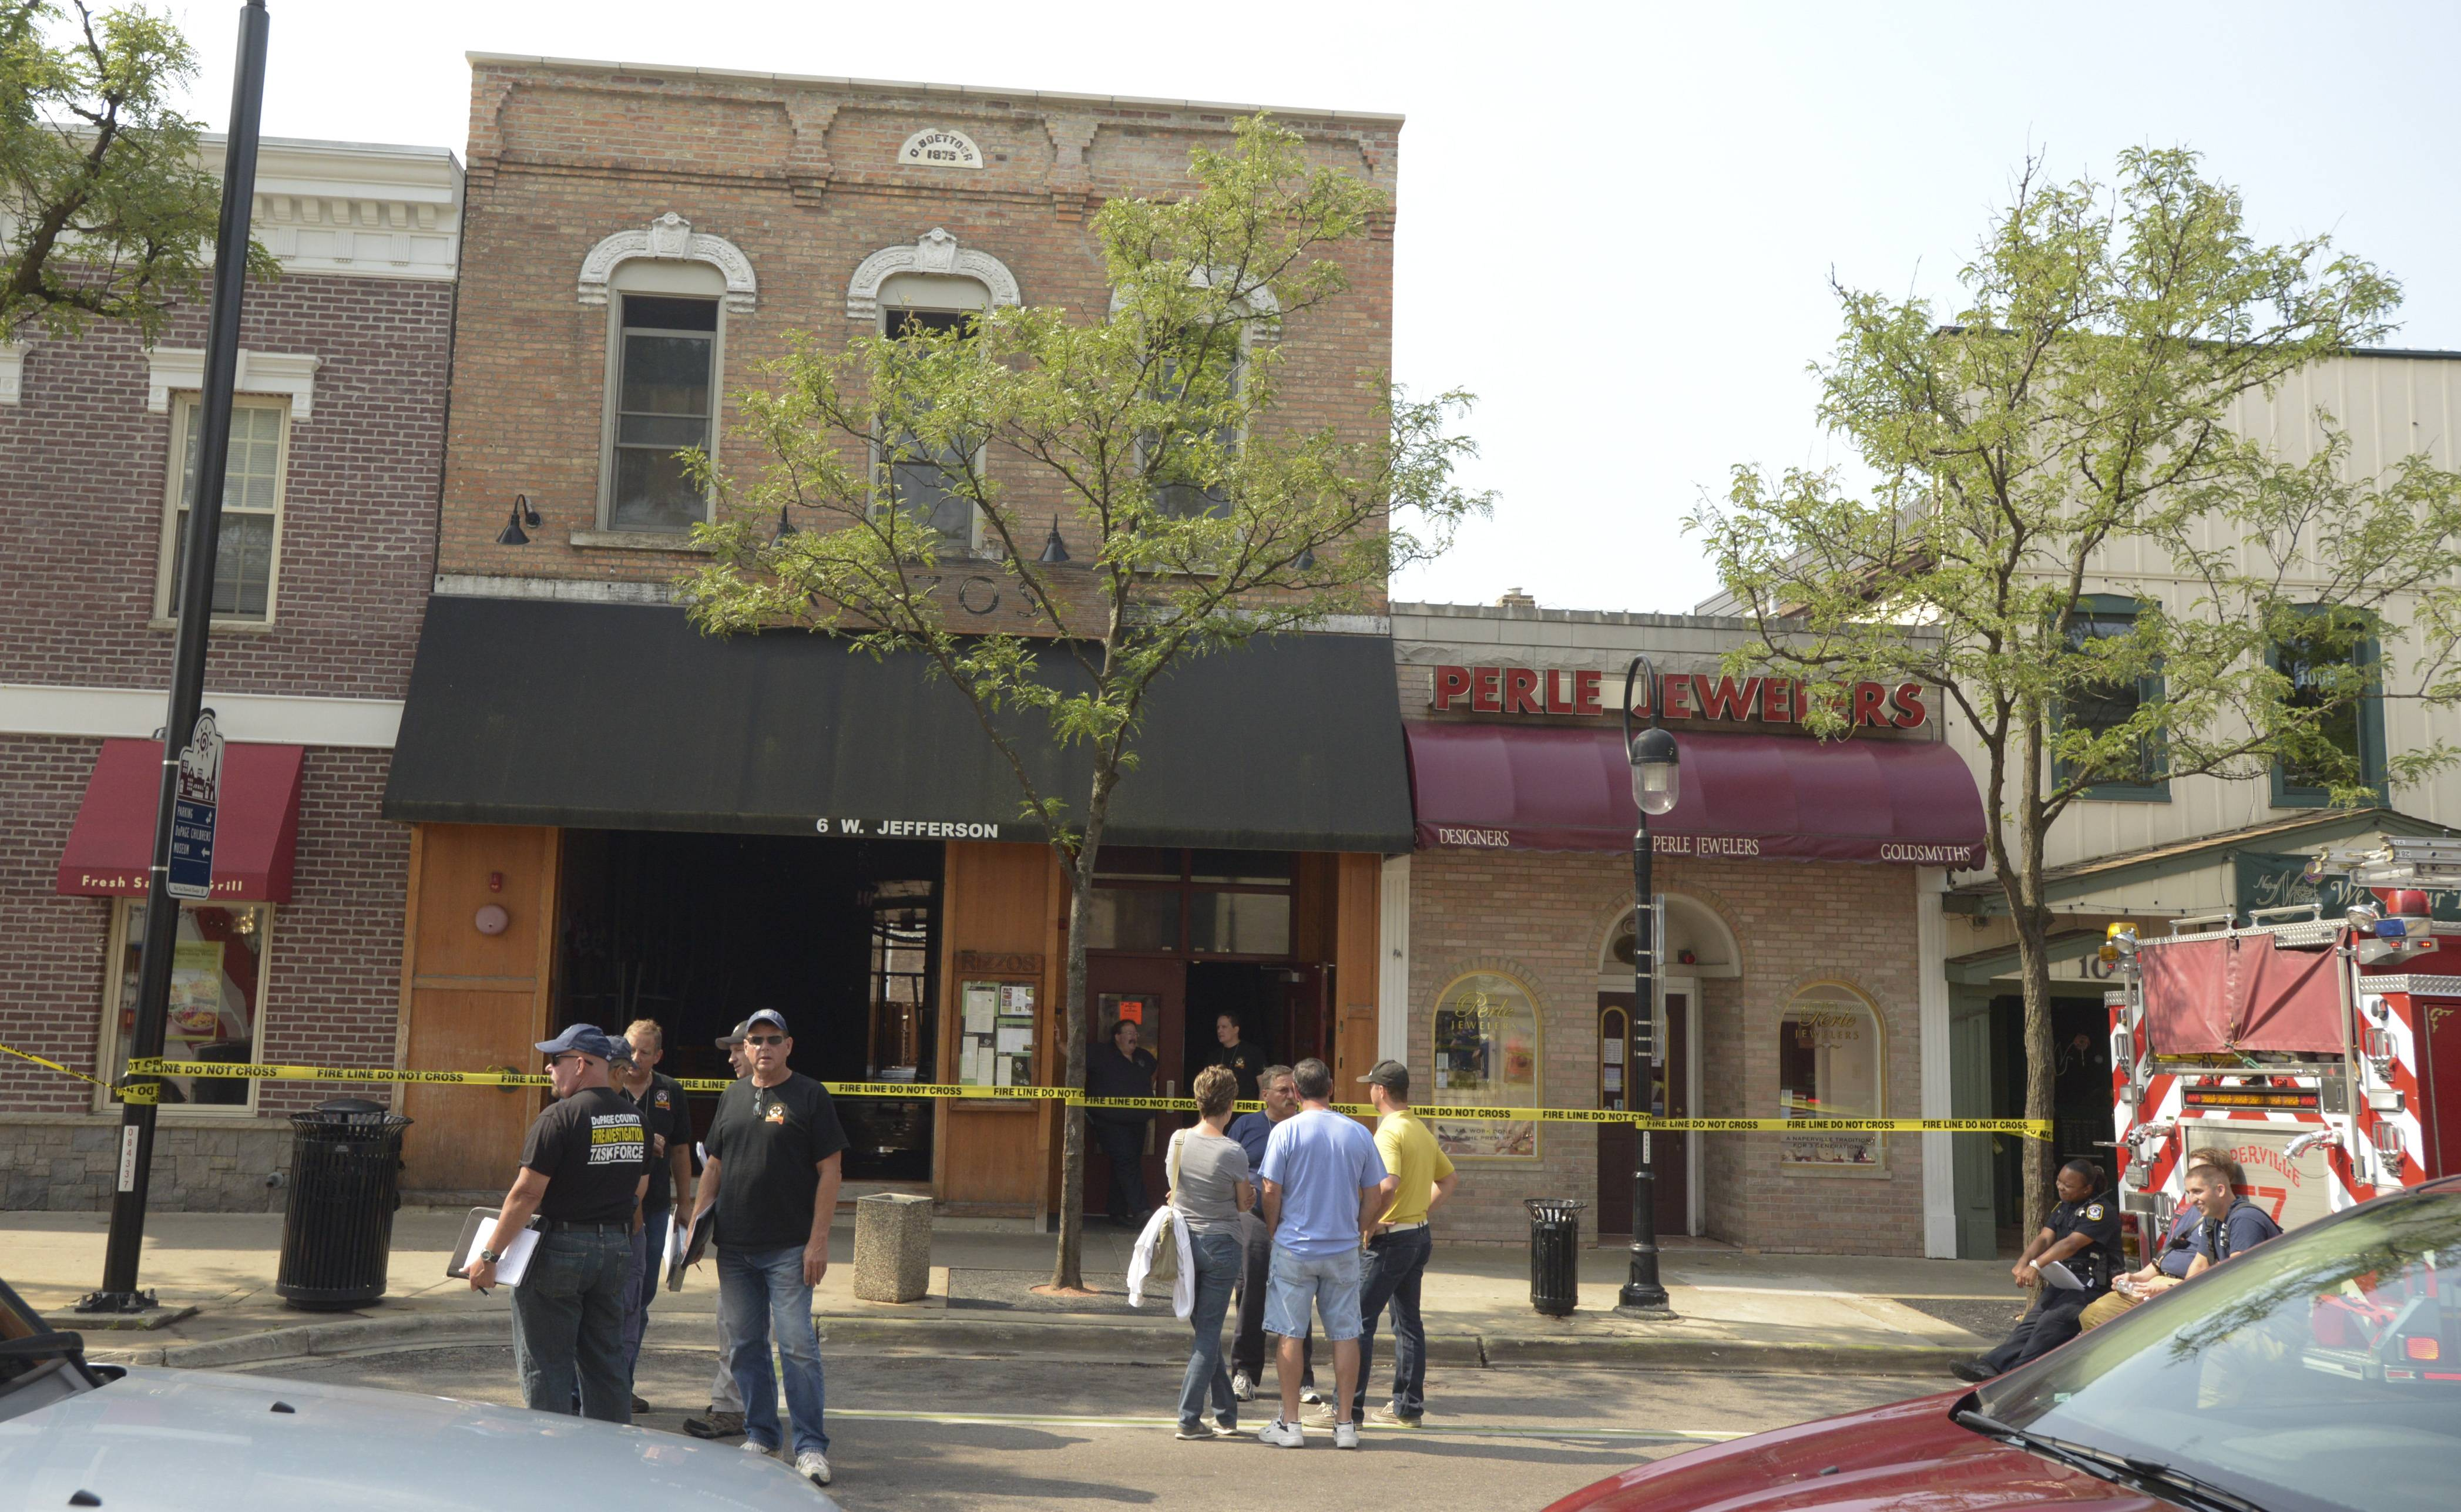 Investigators are working to determine the cause of an early morning fire Sunday that caused extensive damage to a restaurant at 6 W. Jefferson Ave. in downtown Naperville. The fire left the business uninhabitable, authorities said.